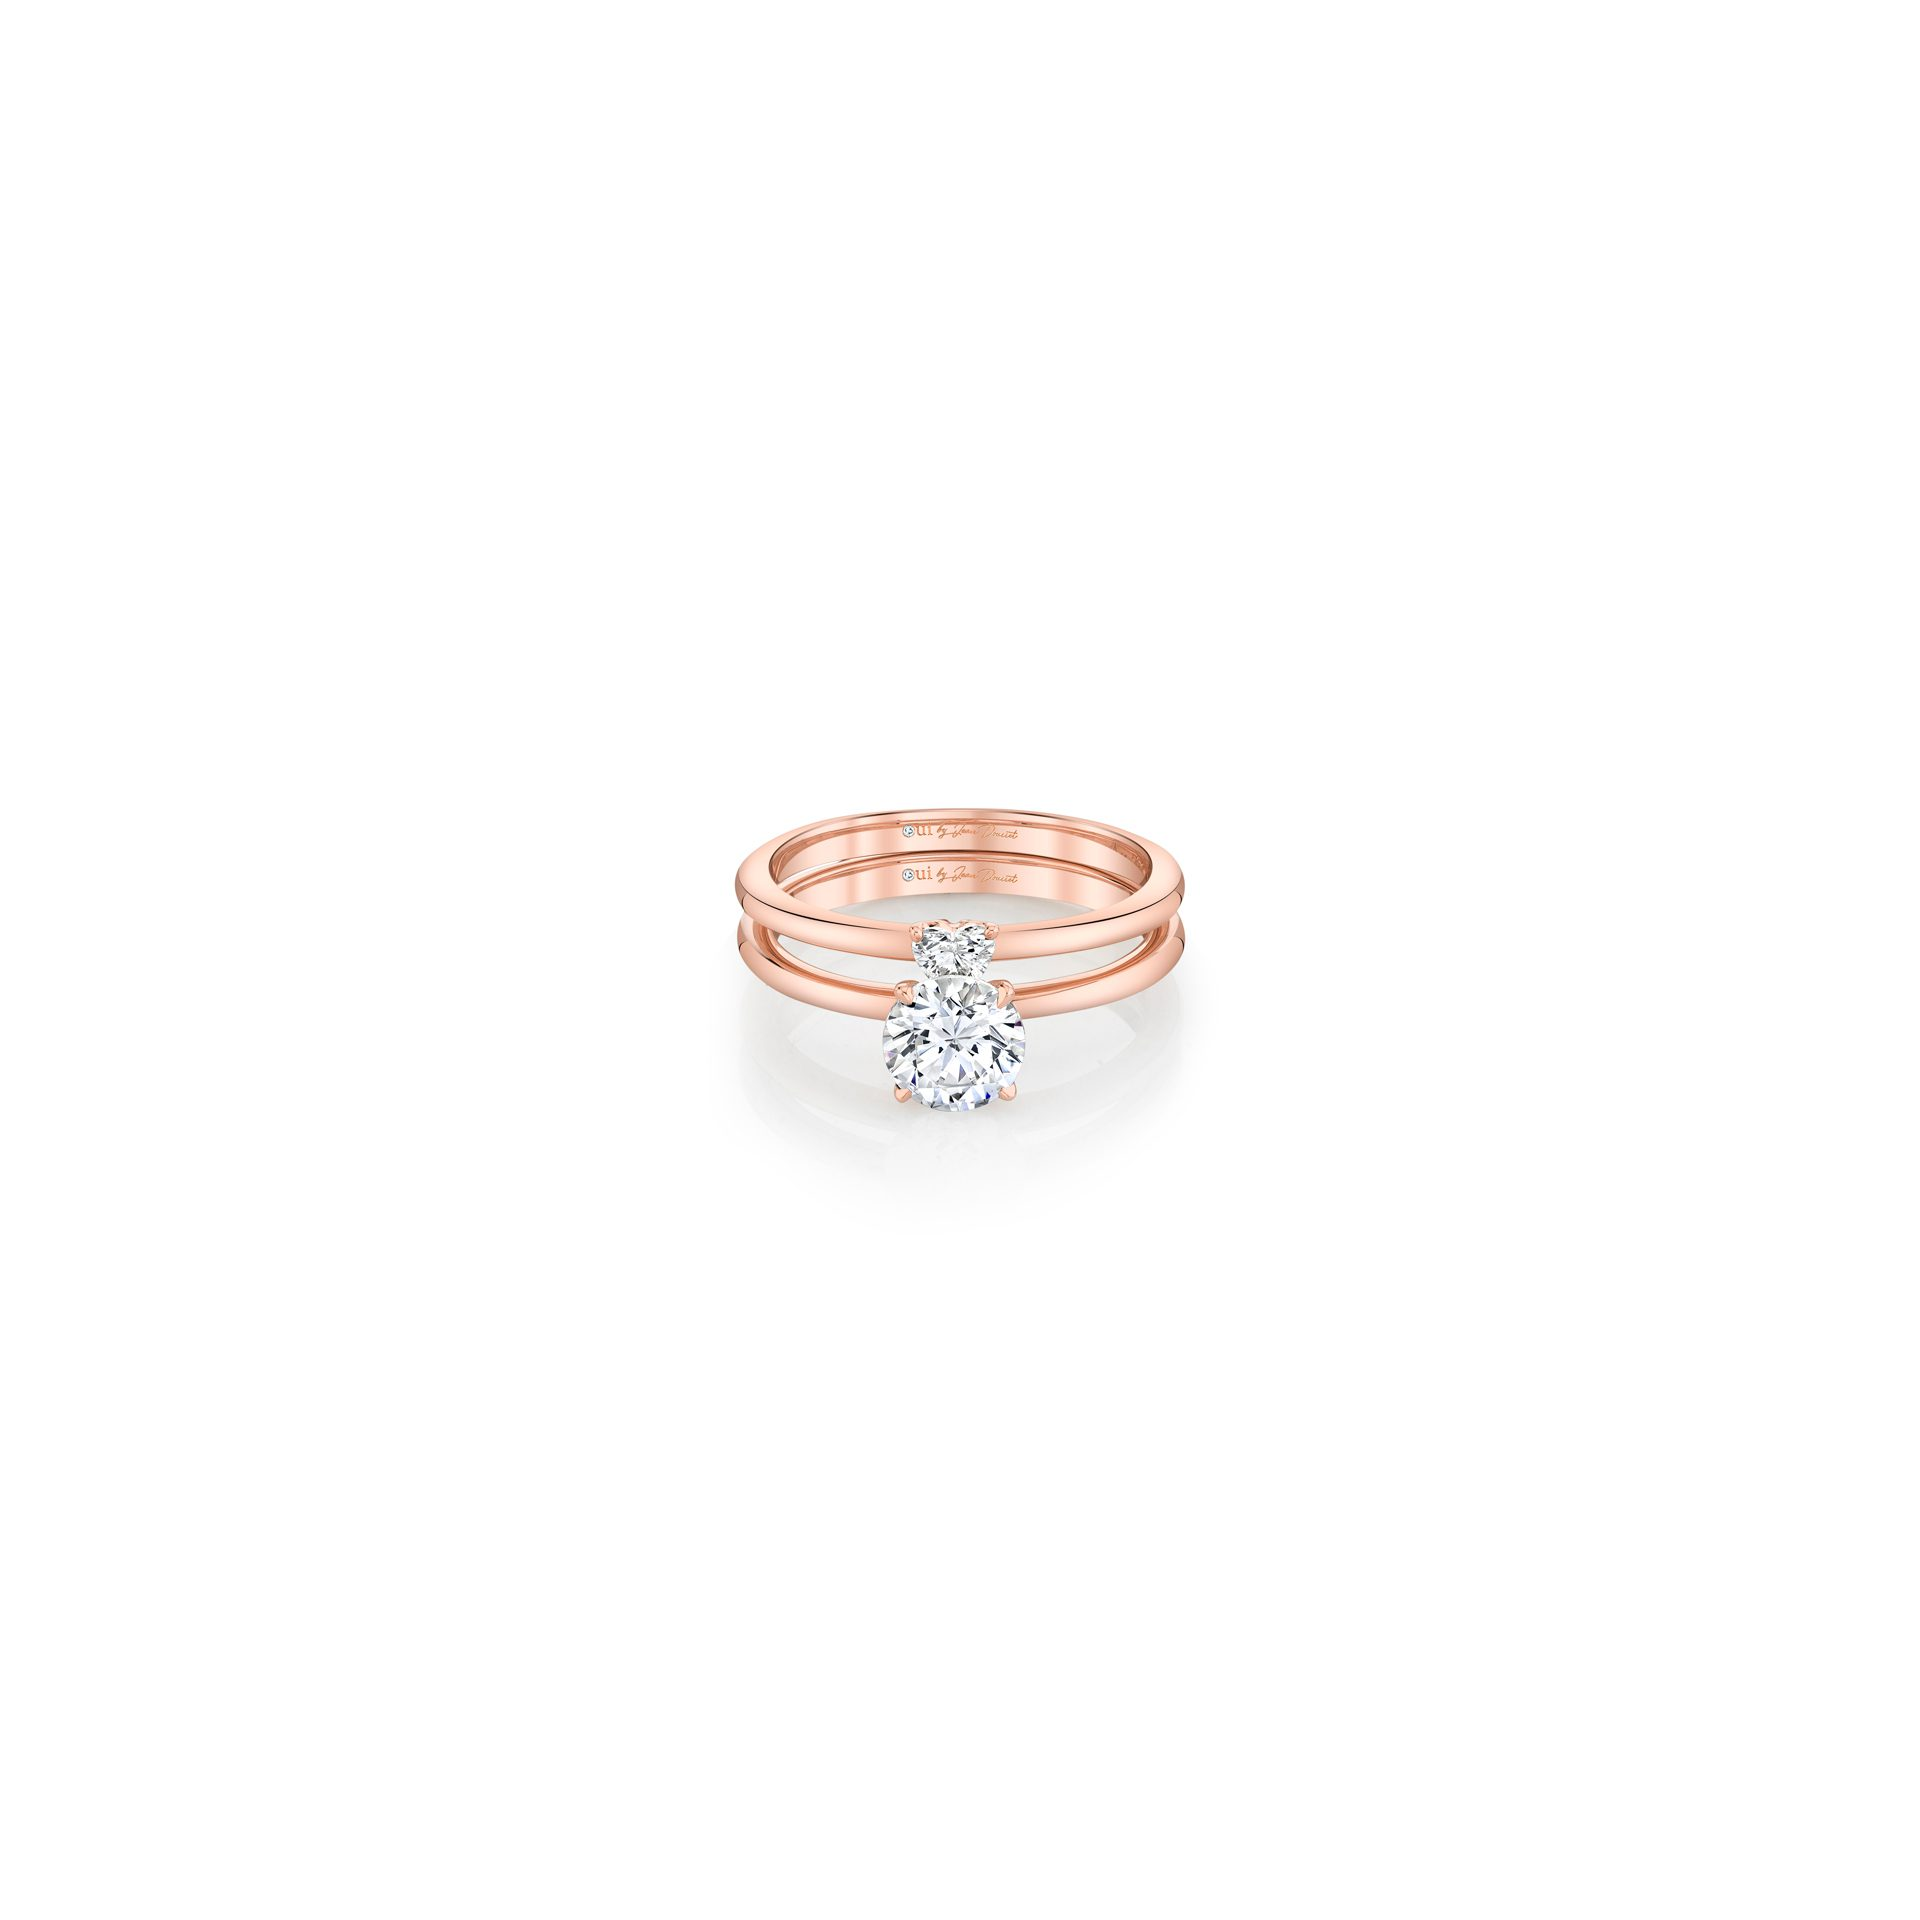 Perfect Duo Interlocking Round Brilliant Solitaire Engagement Ring & Heart Diamond Wedding Band Set in 18k Rose Gold Front View by Oui by Jean Dousset